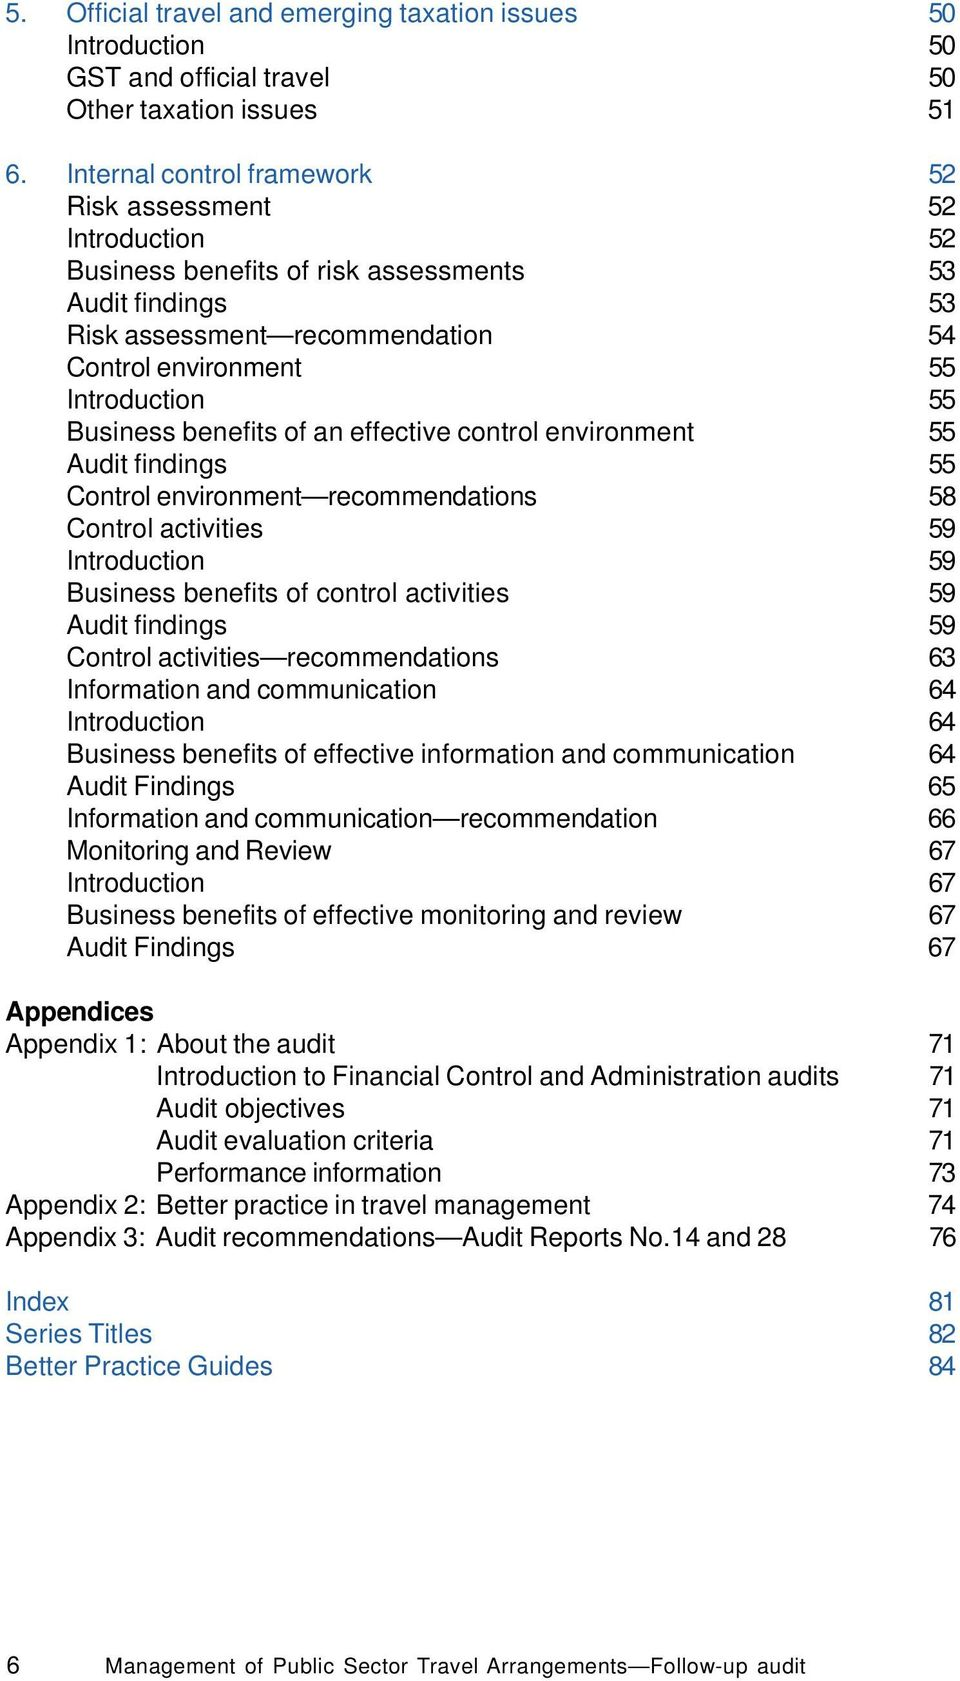 Business benefits of an effective control environment 55 Audit findings 55 Control environment recommendations 58 Control activities 59 Introduction 59 Business benefits of control activities 59